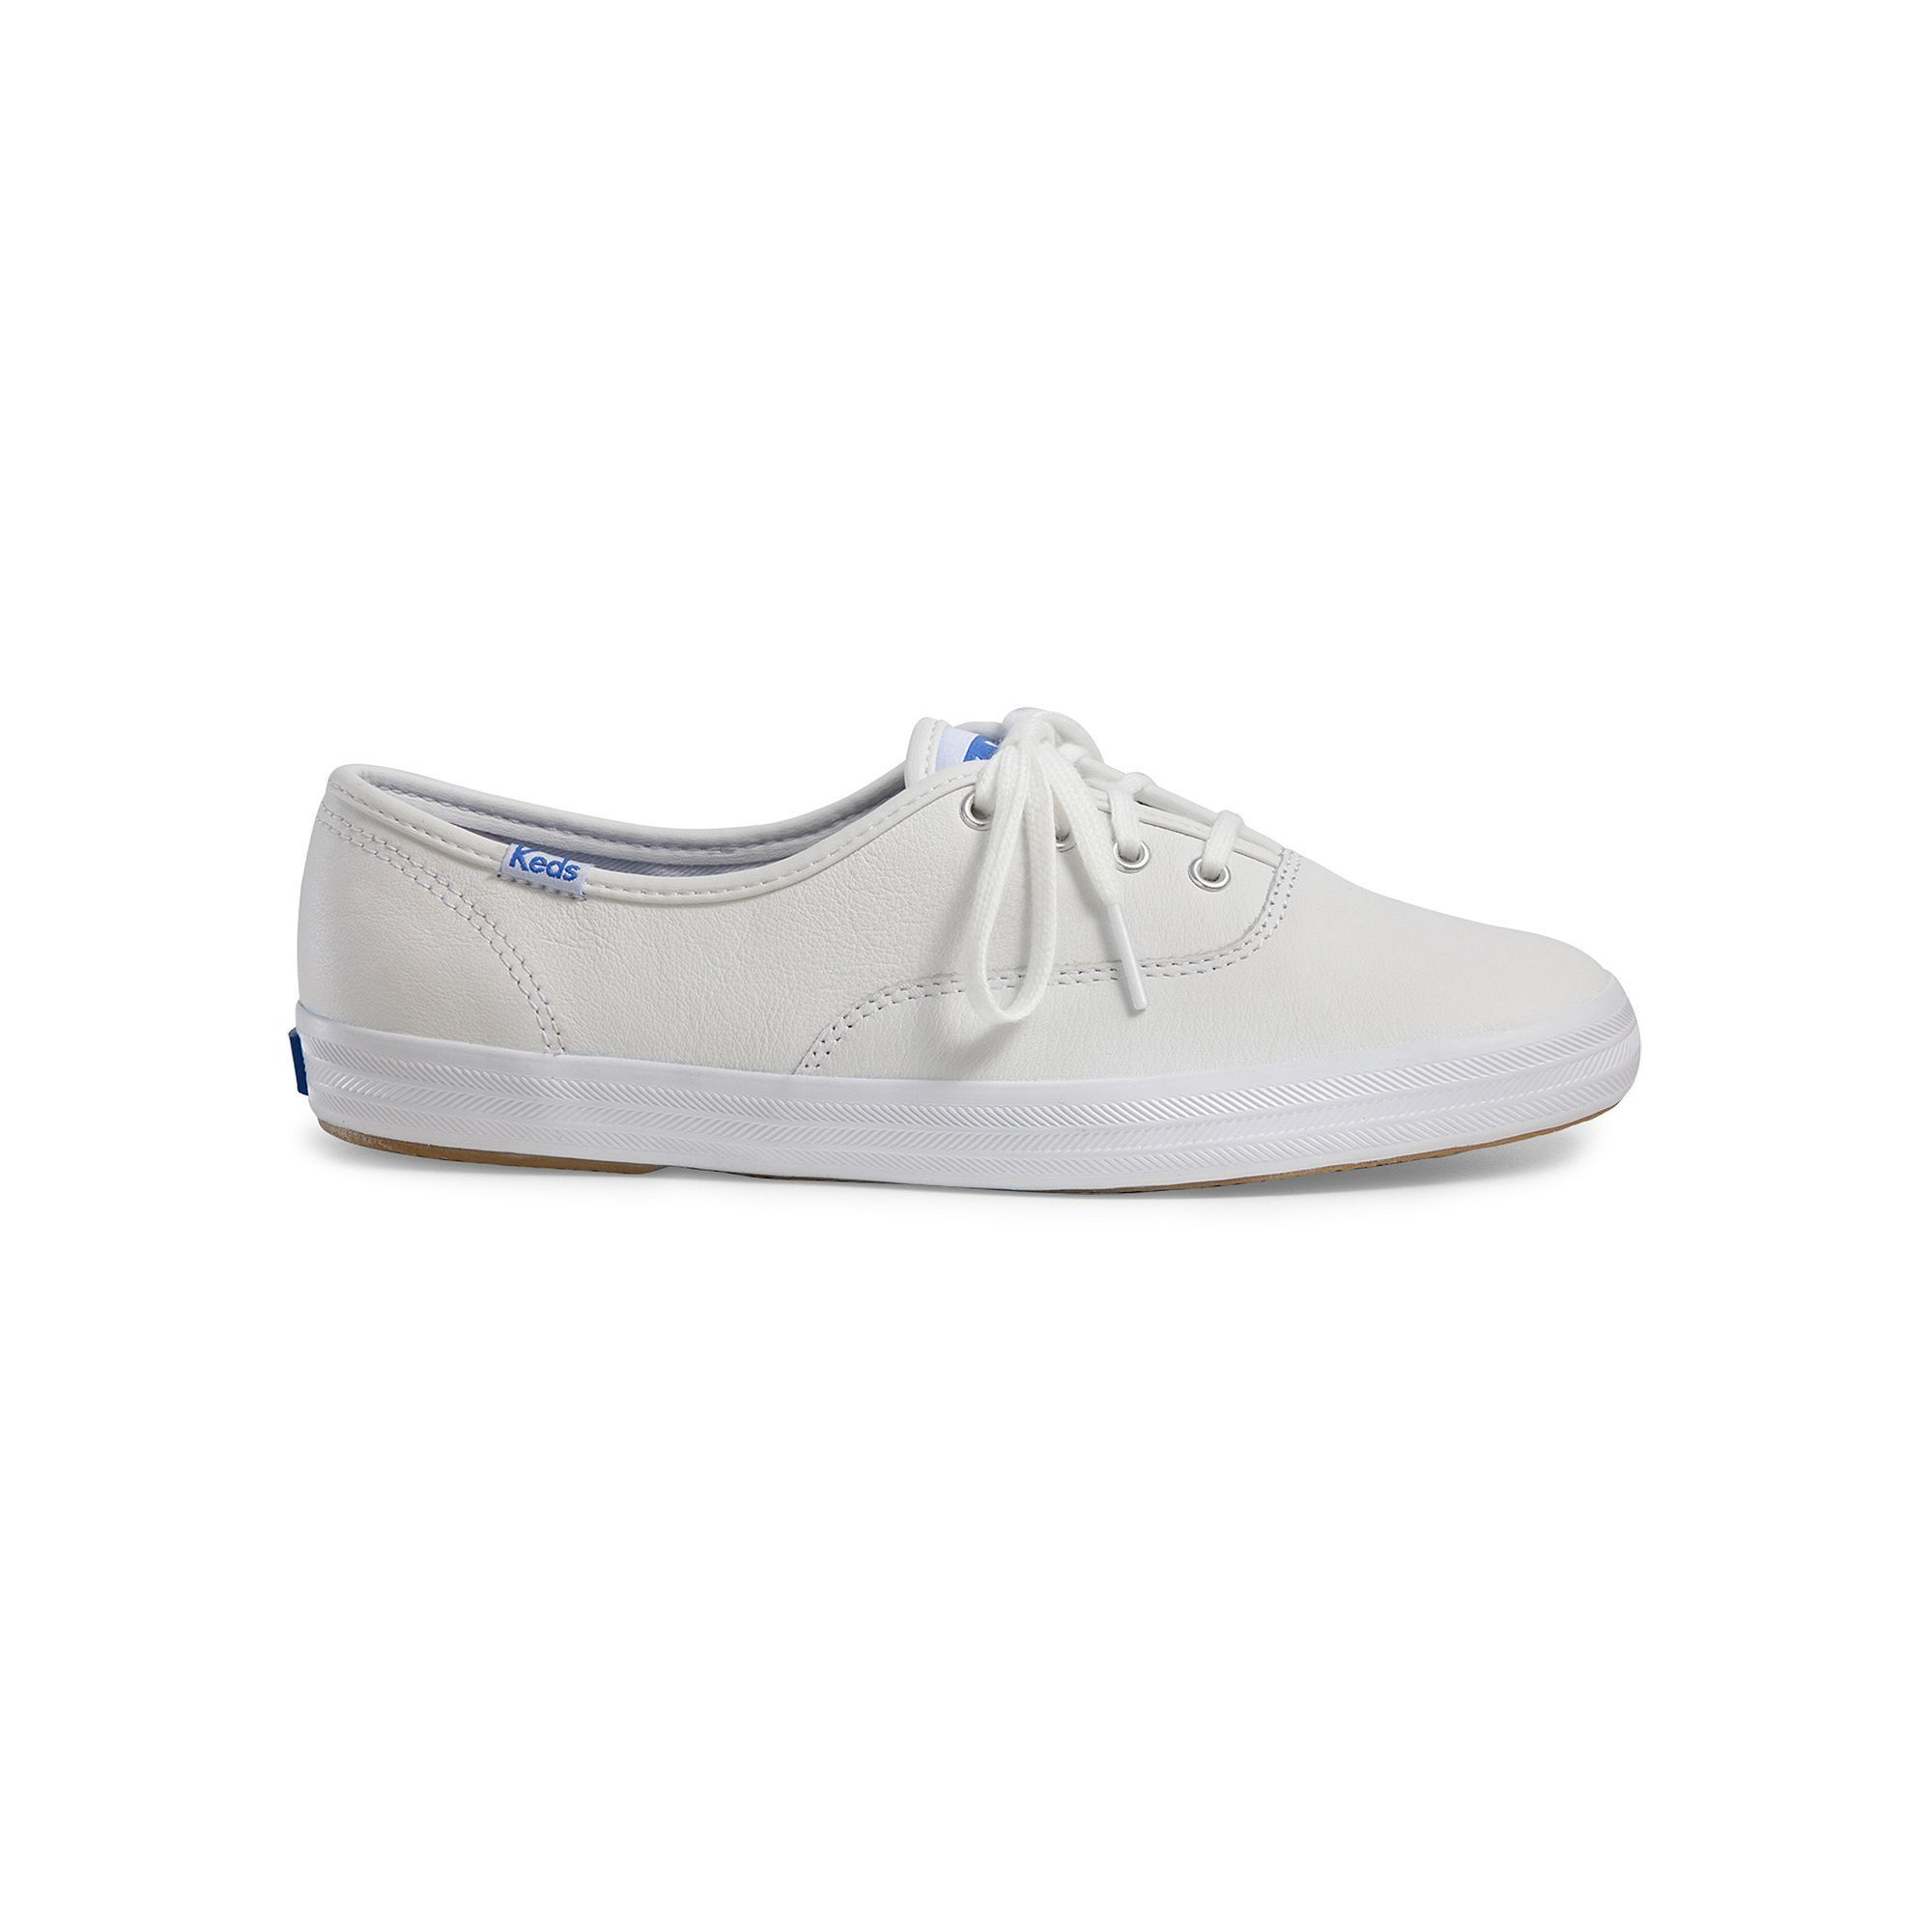 sale real Keds Champion Women's Leather ... Oxford Shoes buy cheap best for sale free shipping Ge4LMM8hS